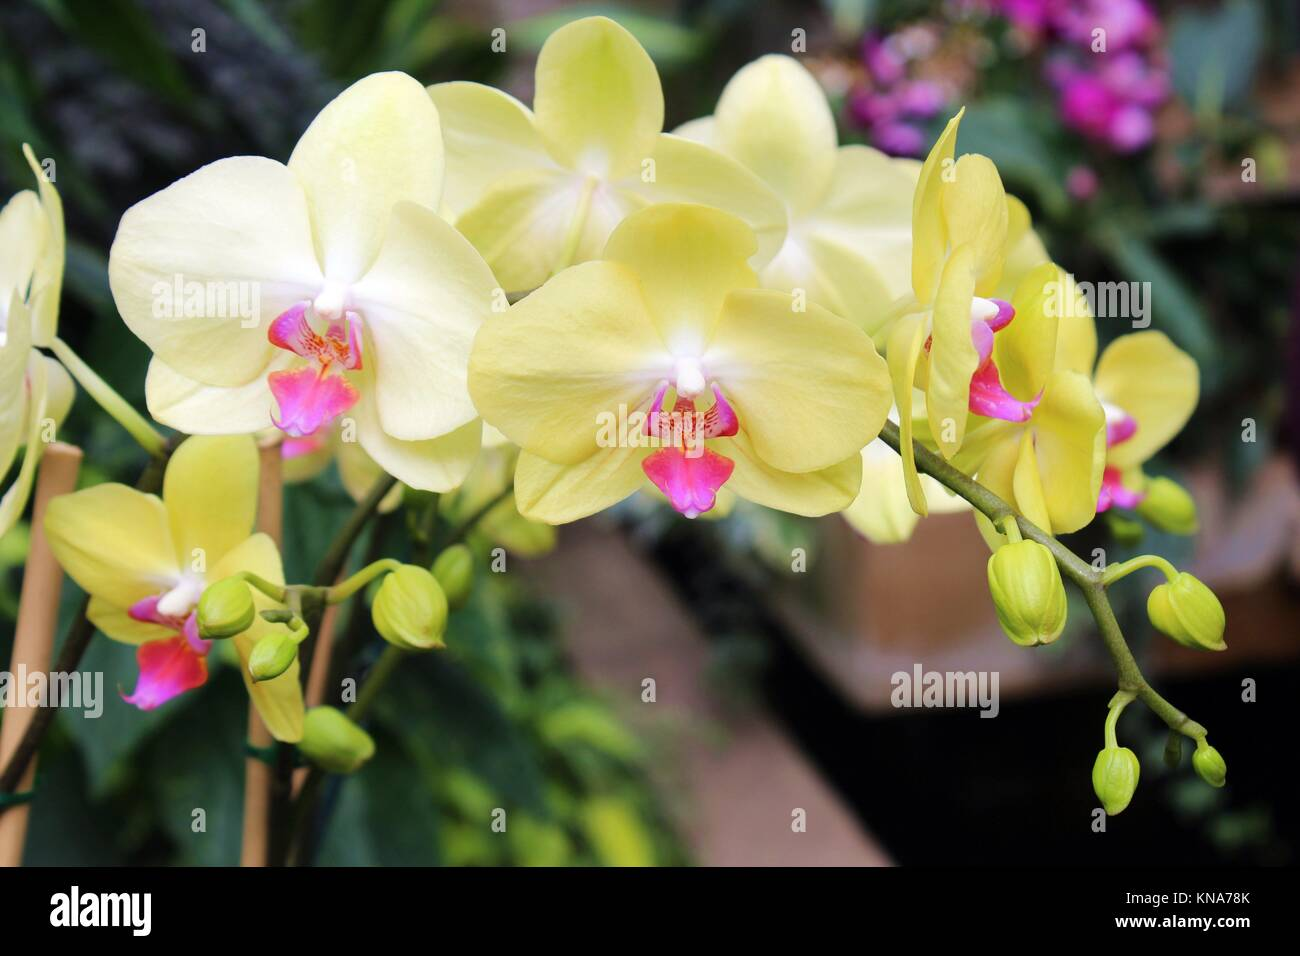 a cluster of blooming yellow phalaenopsis orchids stock photo